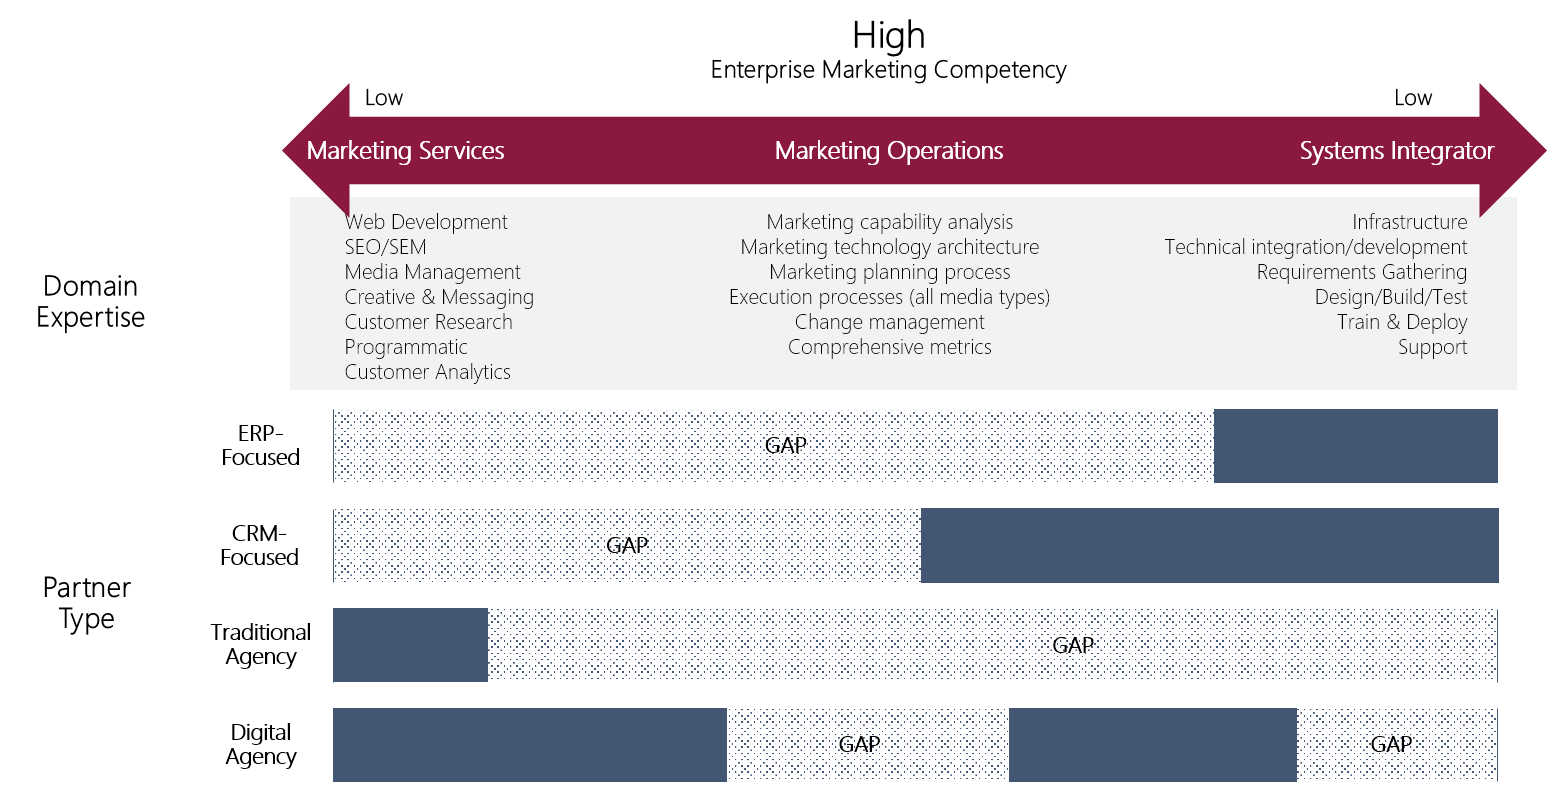 Partner Landscape - An Enterprise Marketing Competency is the level at which a partner understands the scope of the marketing process, and engagement ecosystem. Current Microsoft CRM and ERP Partners have limited to marketing expertise, beyond integration with prominent marketing automation tools. Partners will need to deepen understanding of marketing process and media, and evolve delivery models.